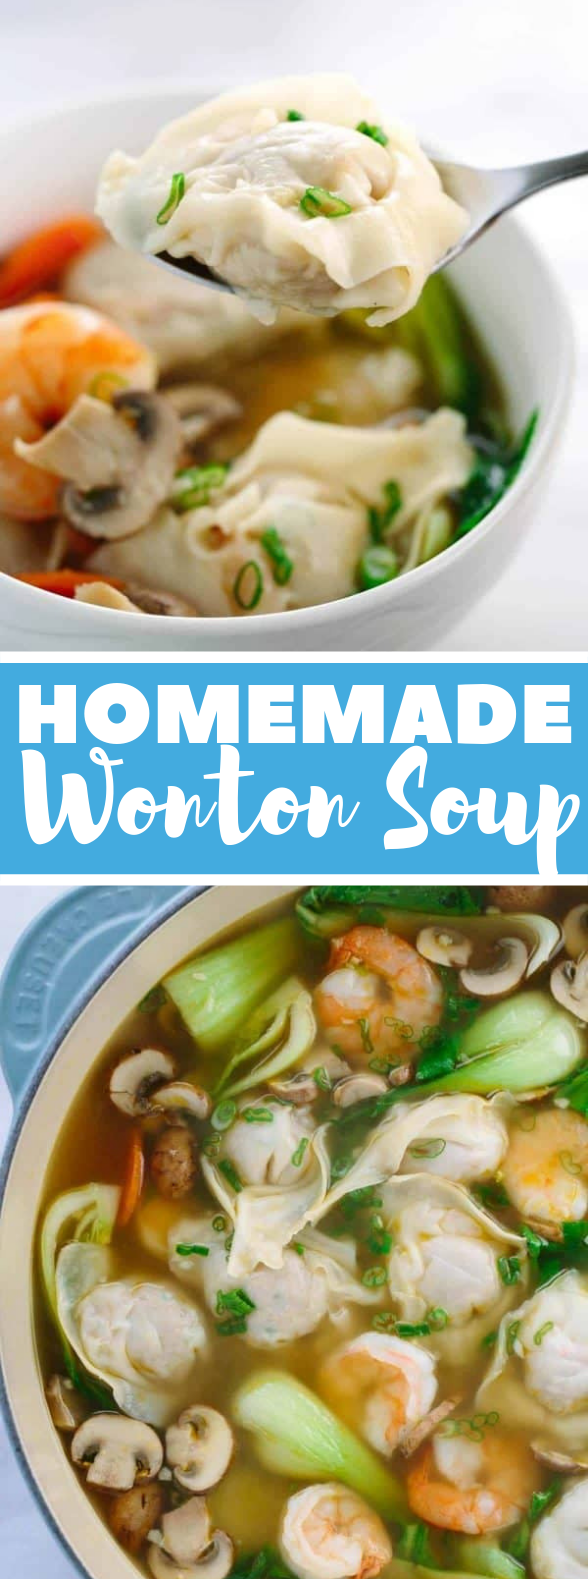 Easy Homemade Wonton Soup #asianrecipe #comfortfood